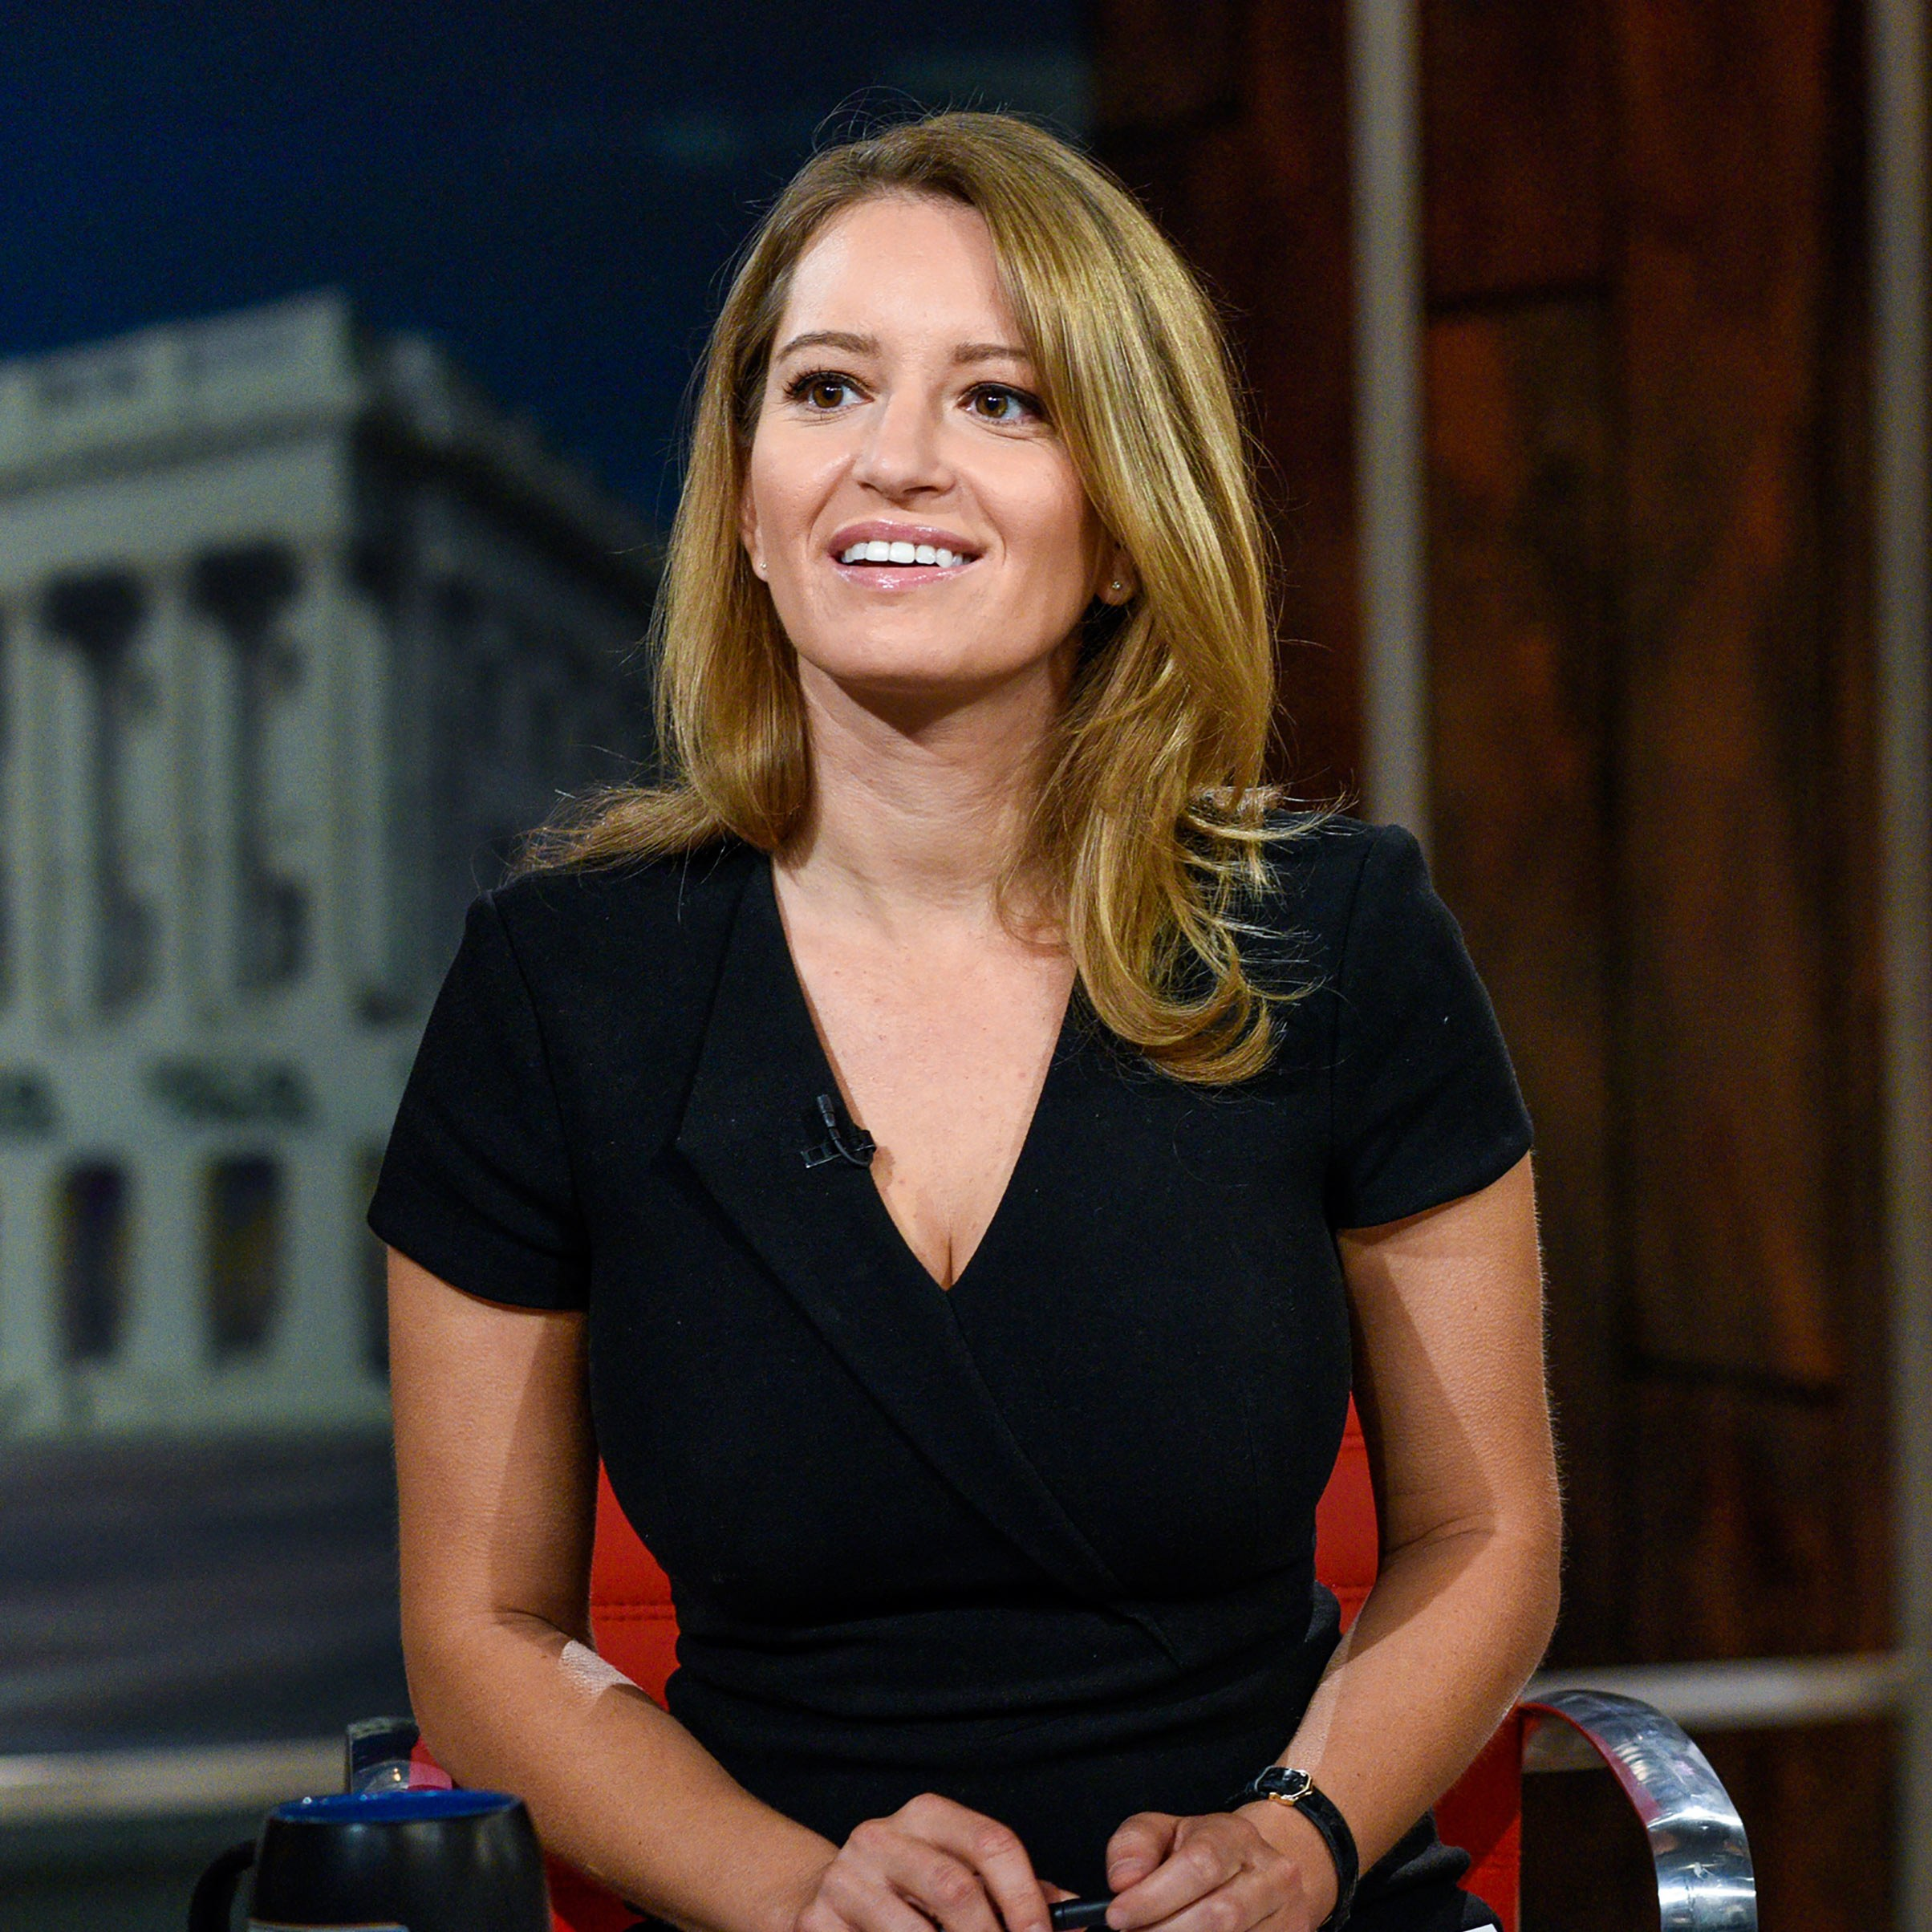 Zoey Tur's daughter, Katy Tur in her black dress